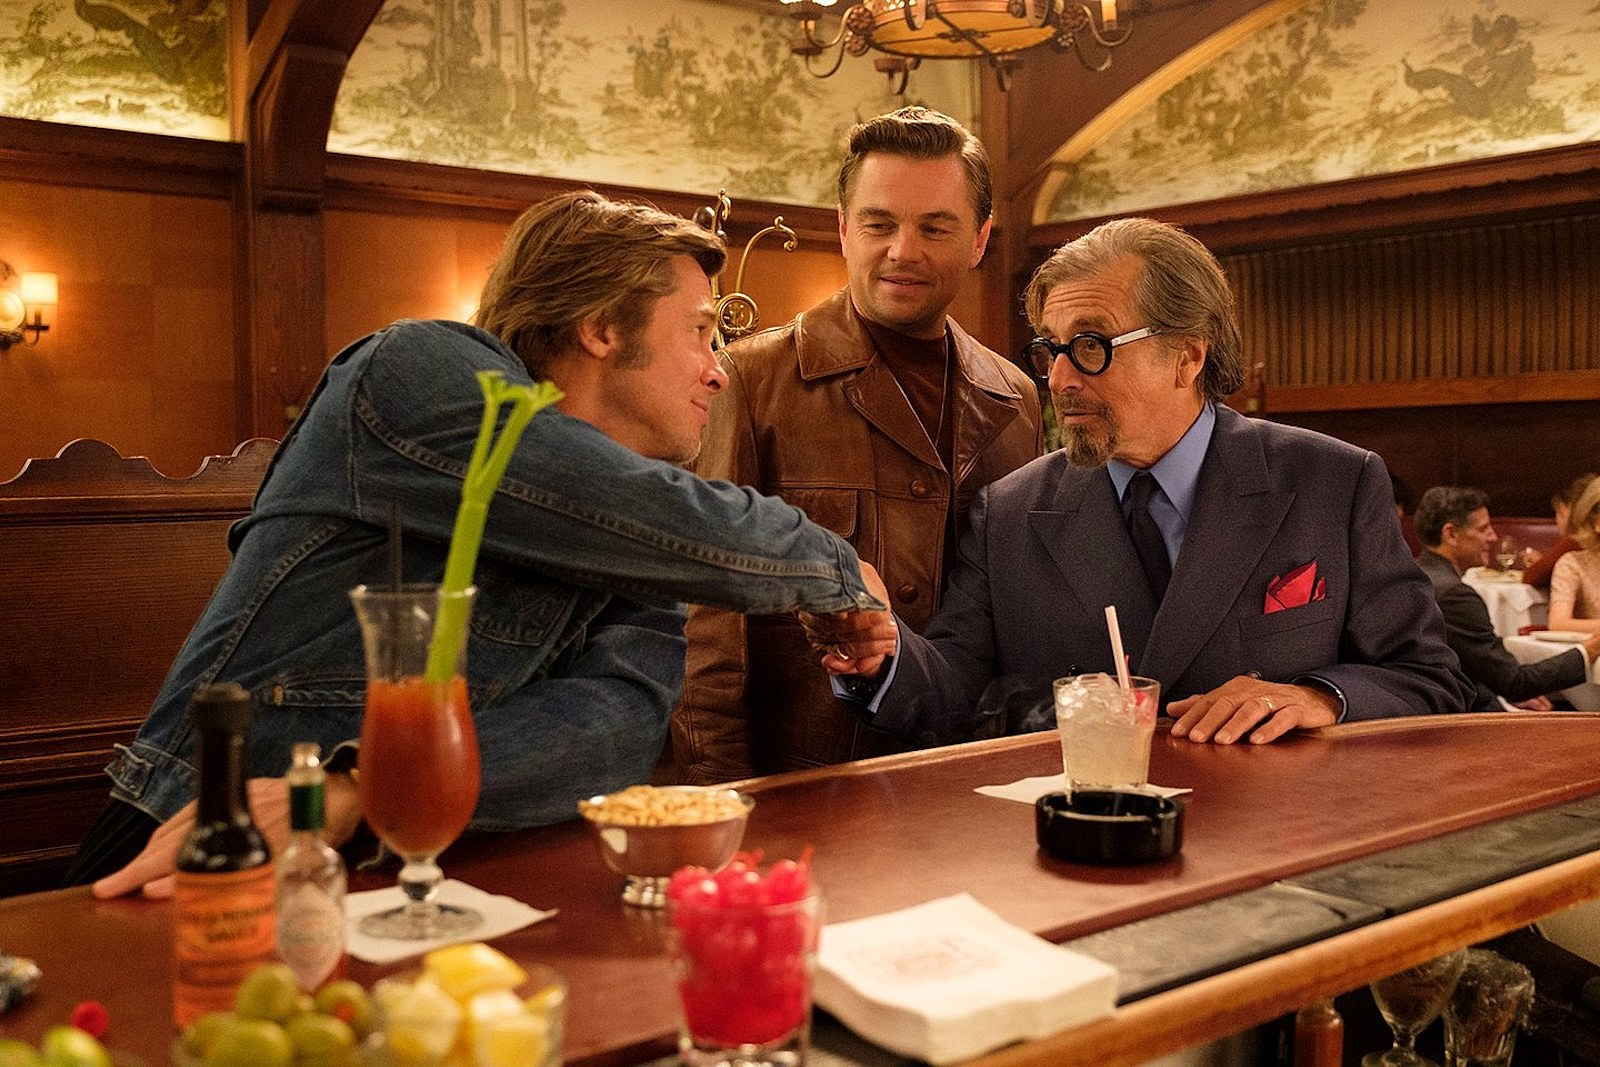 What Are the Songs in the Once Upon a Time in Hollywood Trailer?